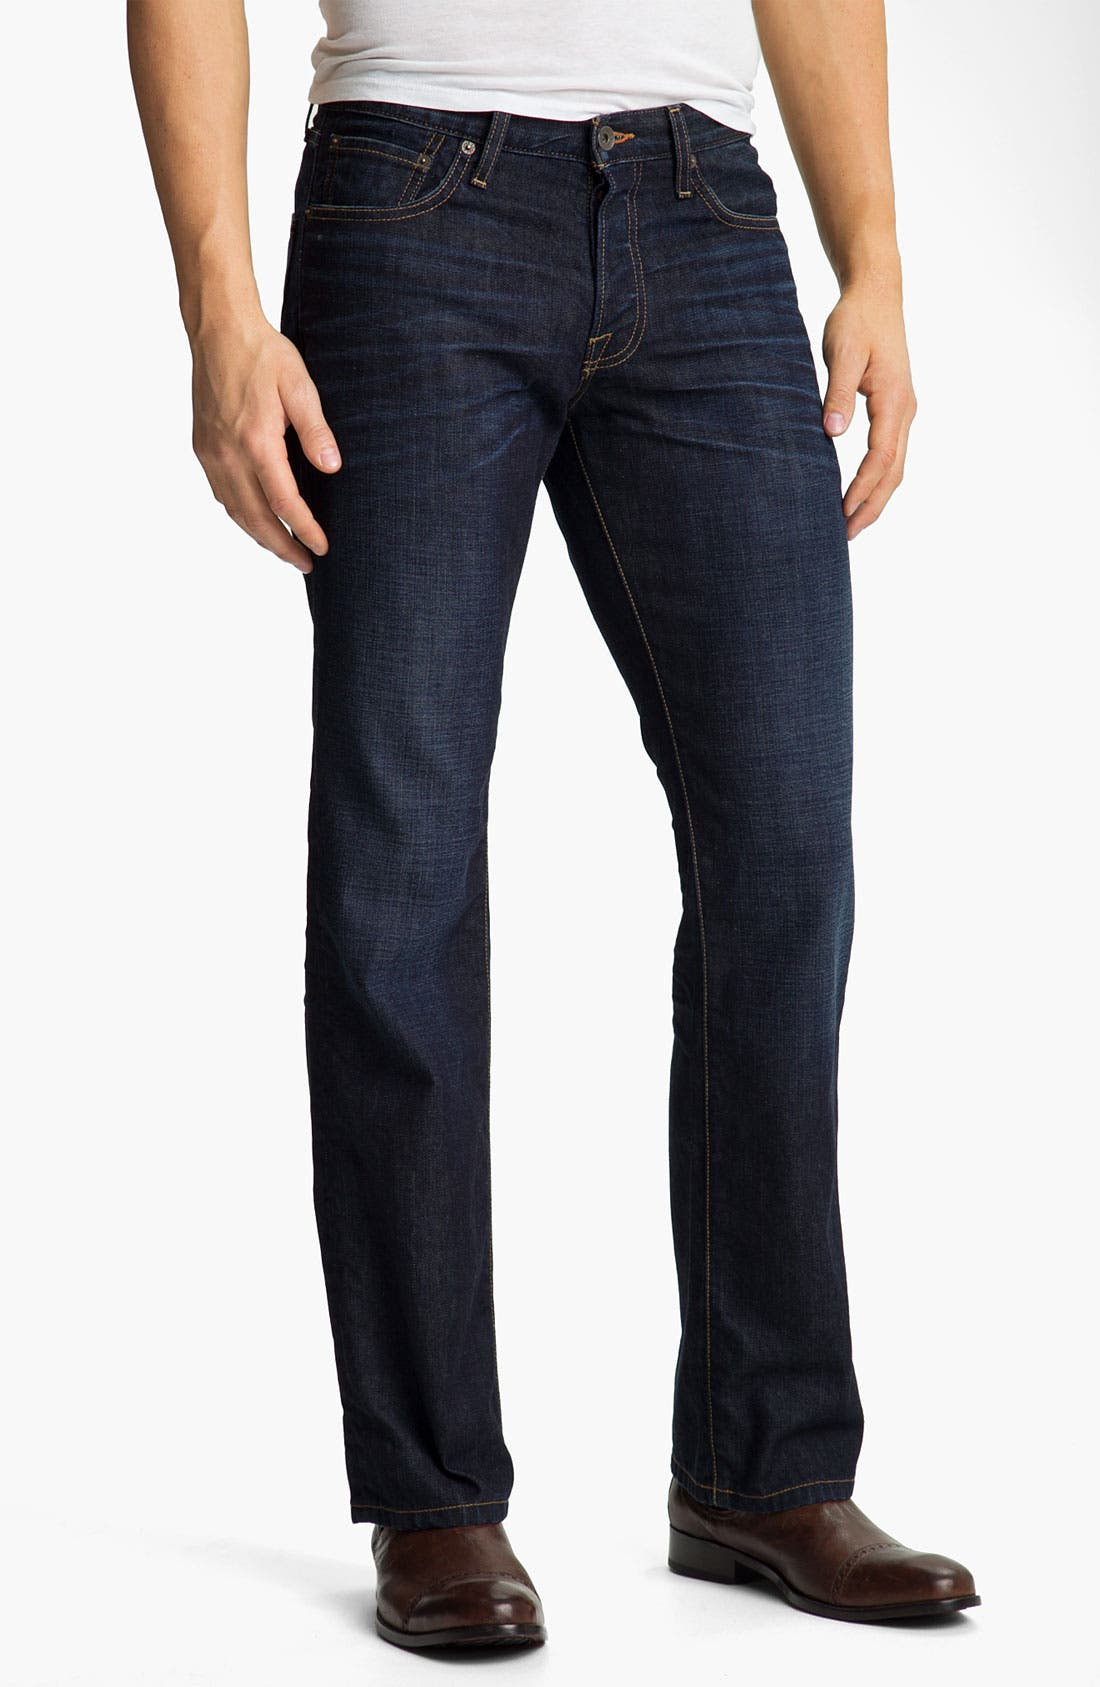 Alternate Image 1 Selected - Lucky Brand '361' Vintage Straight Leg Jeans (Dark Harpeth)